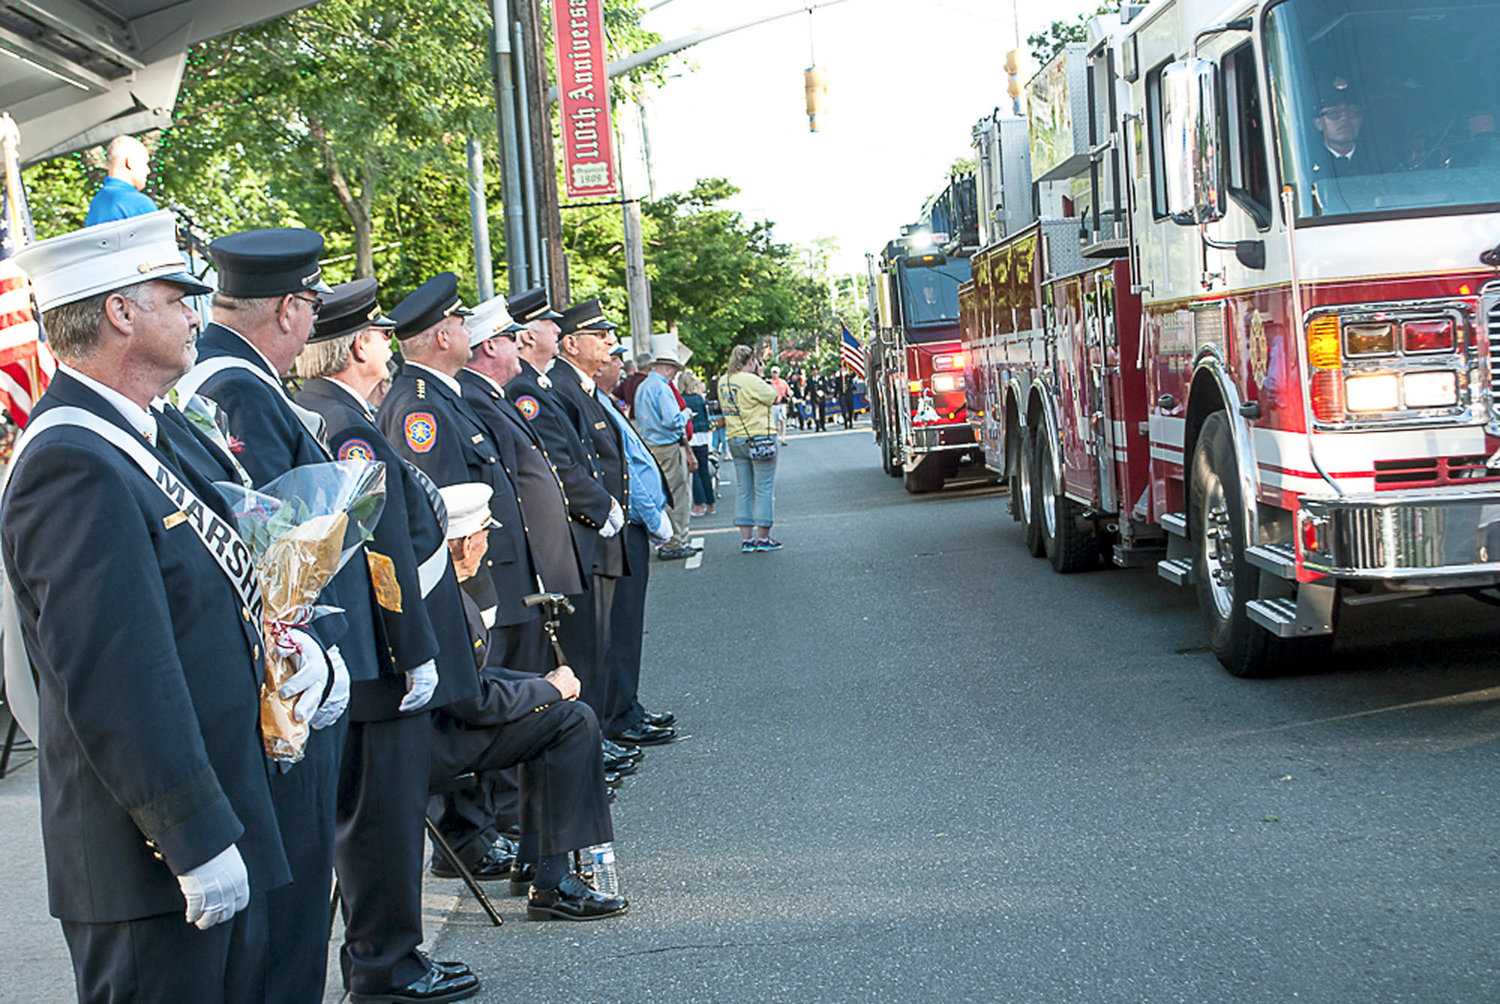 Fire Marshals from a number of fire departments watched as several fire trucks drove down Woodfield Road in Lakeview during the annual 4th Battalion Parade.